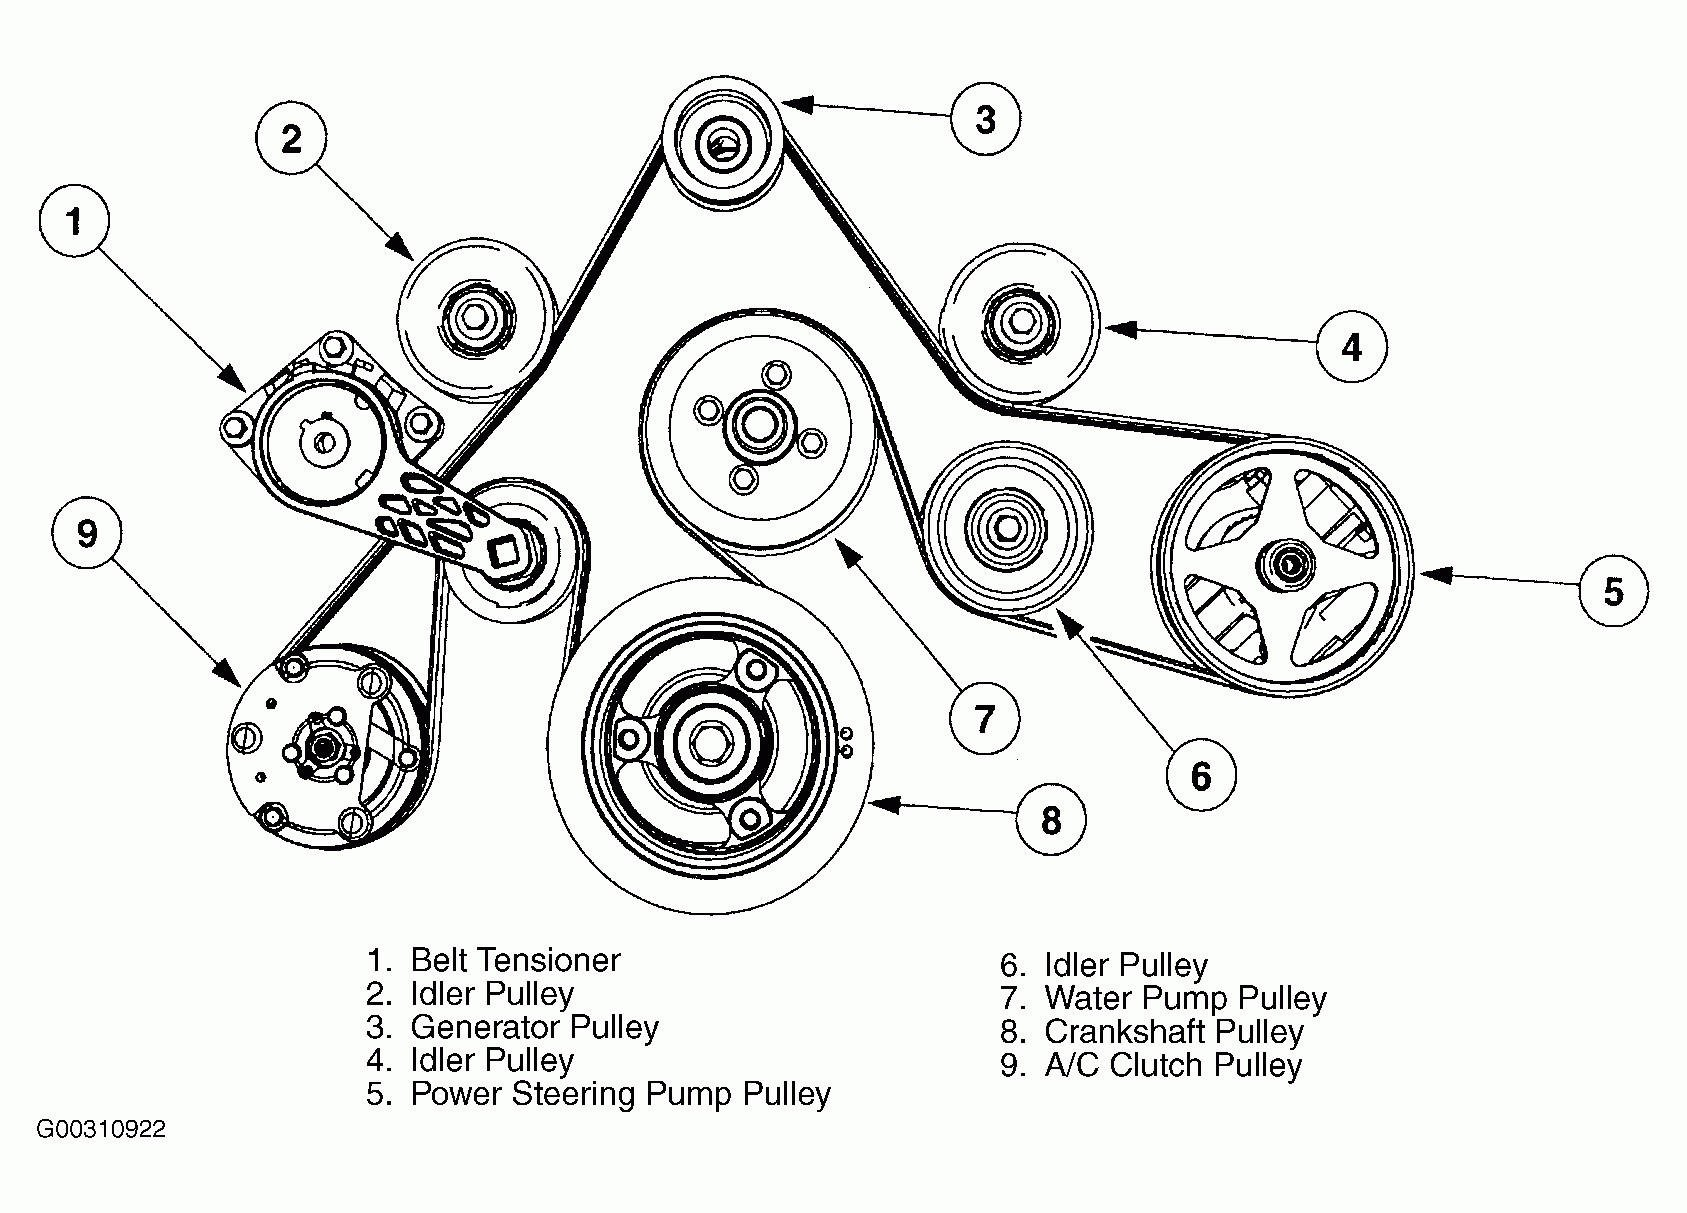 1999 ford Expedition Engine Diagram 2 1999 F53 Wiring